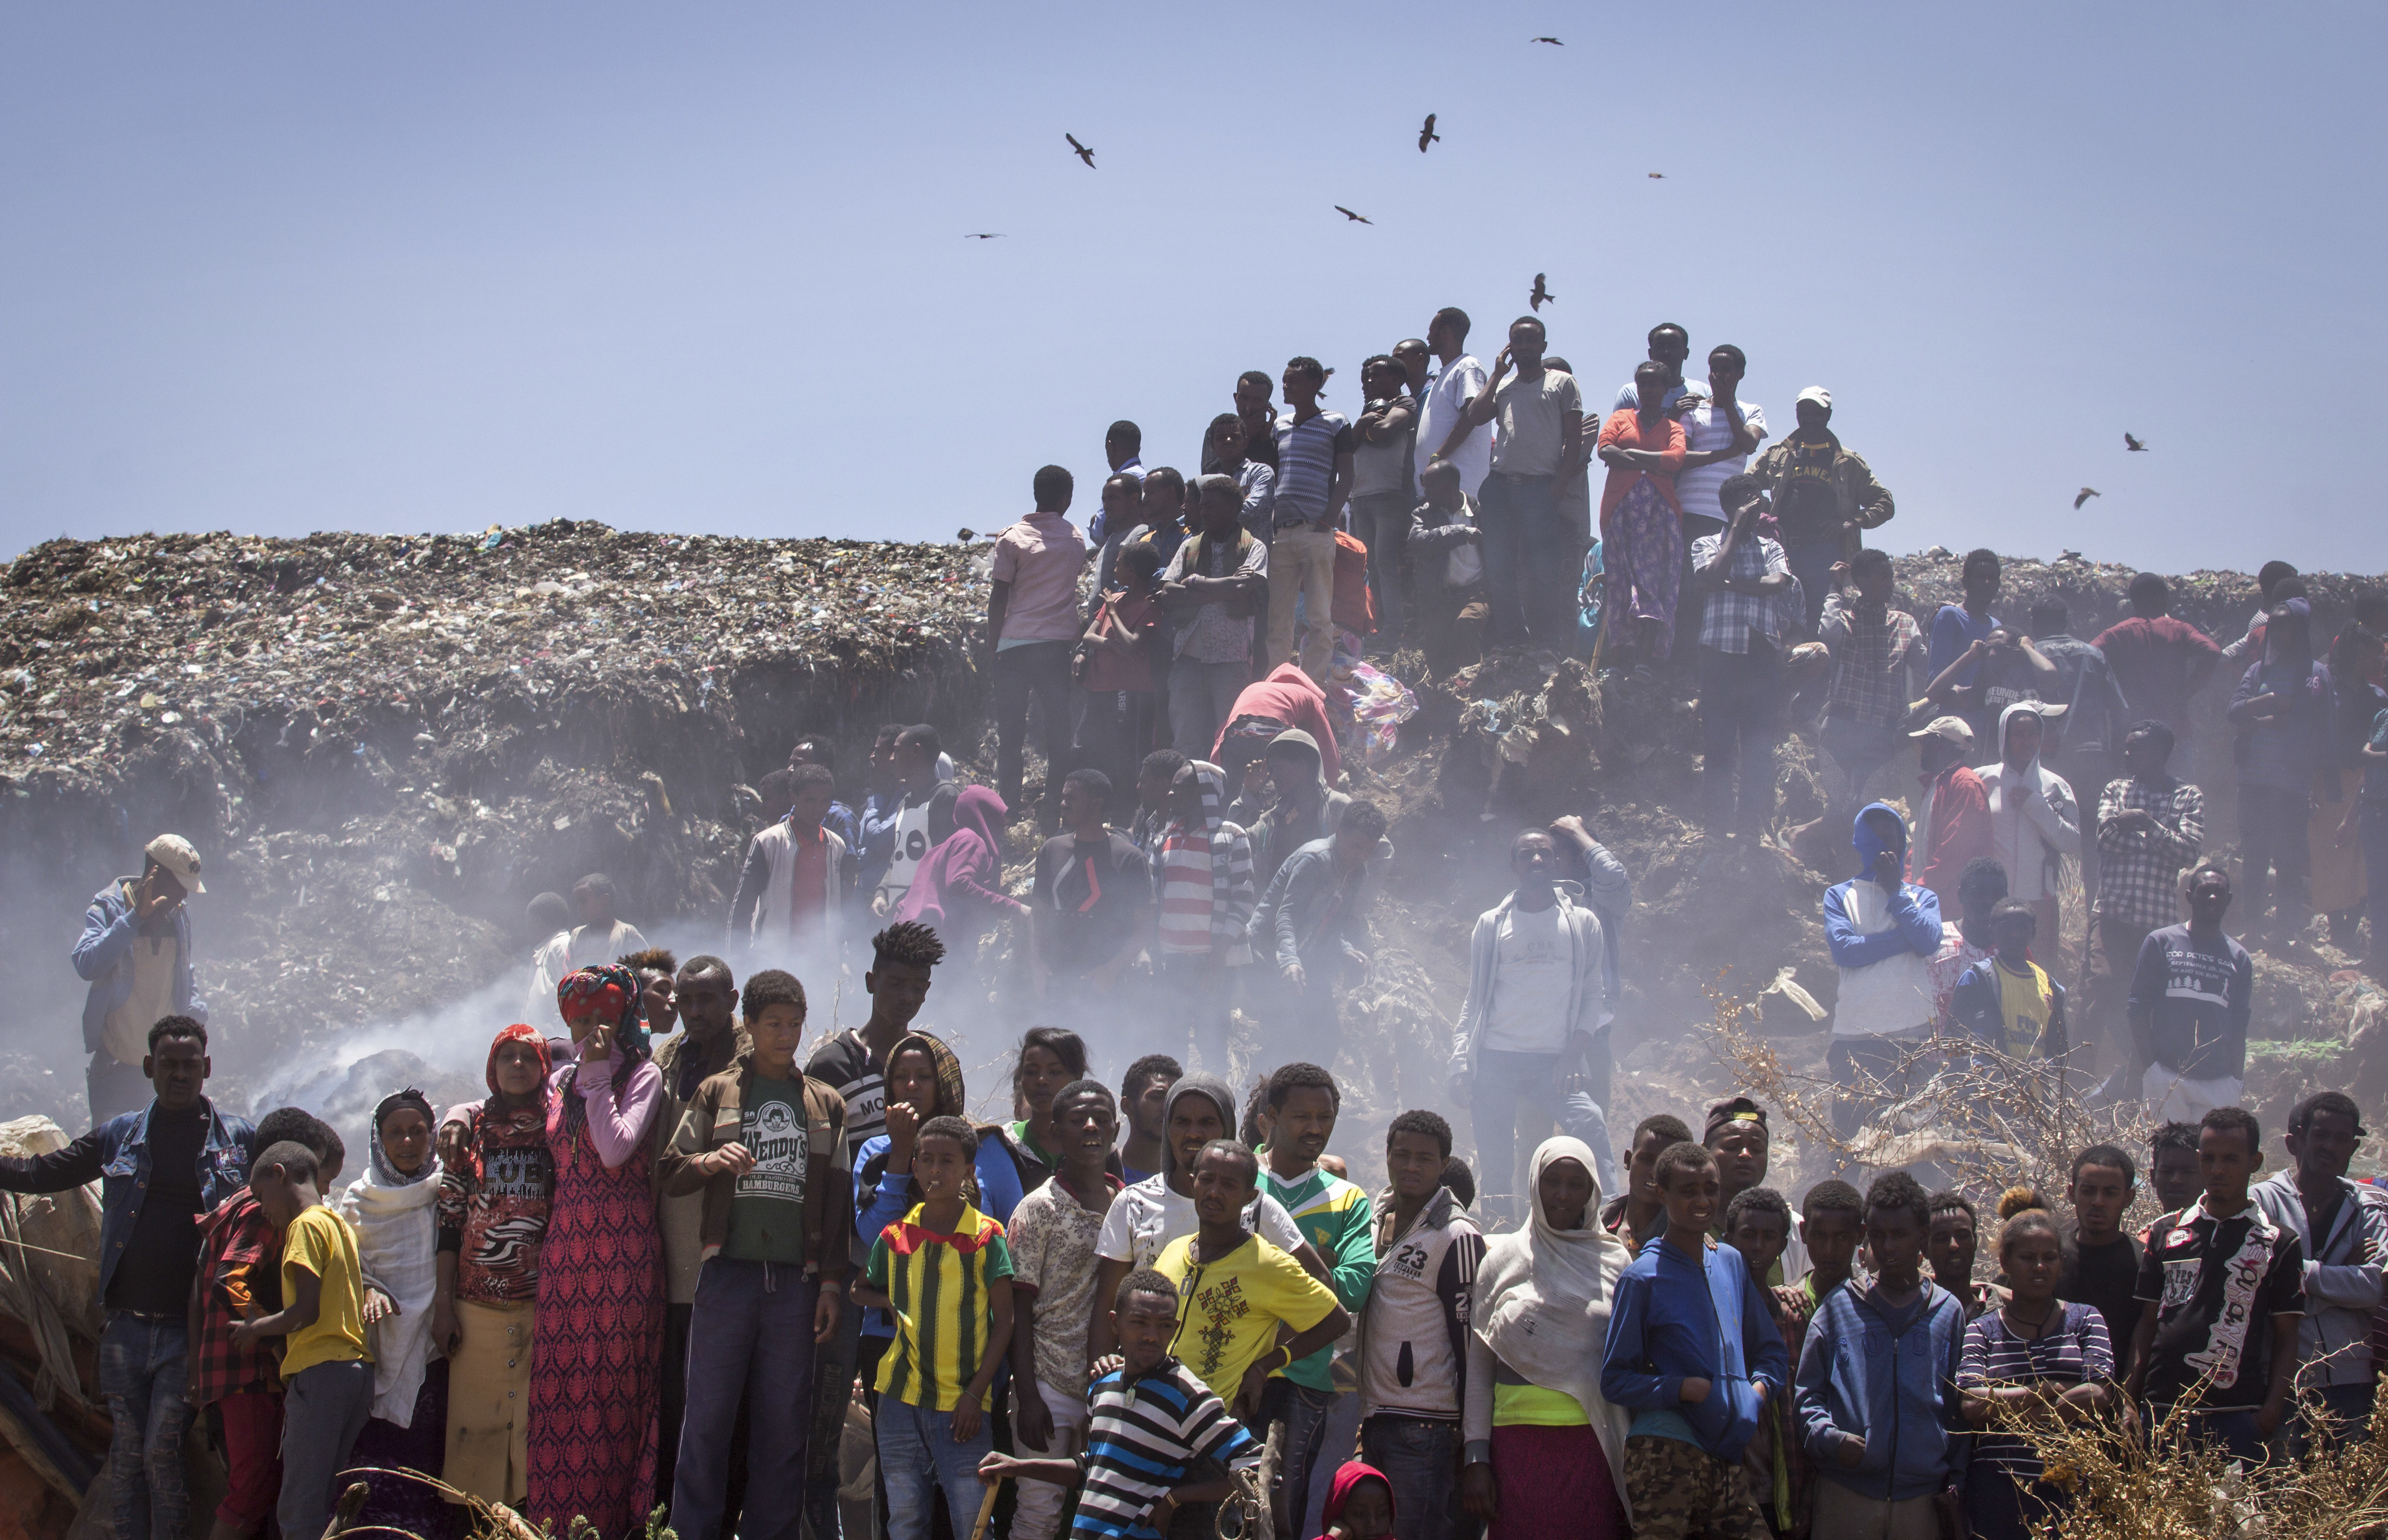 Residents look on as rescue efforts take place at the scene of a garbage landslide, on the outskirts of the capital Addis Ababa, in Ethiopia on March 12, 2017. (AP Photo/Mulugeta Ayene)